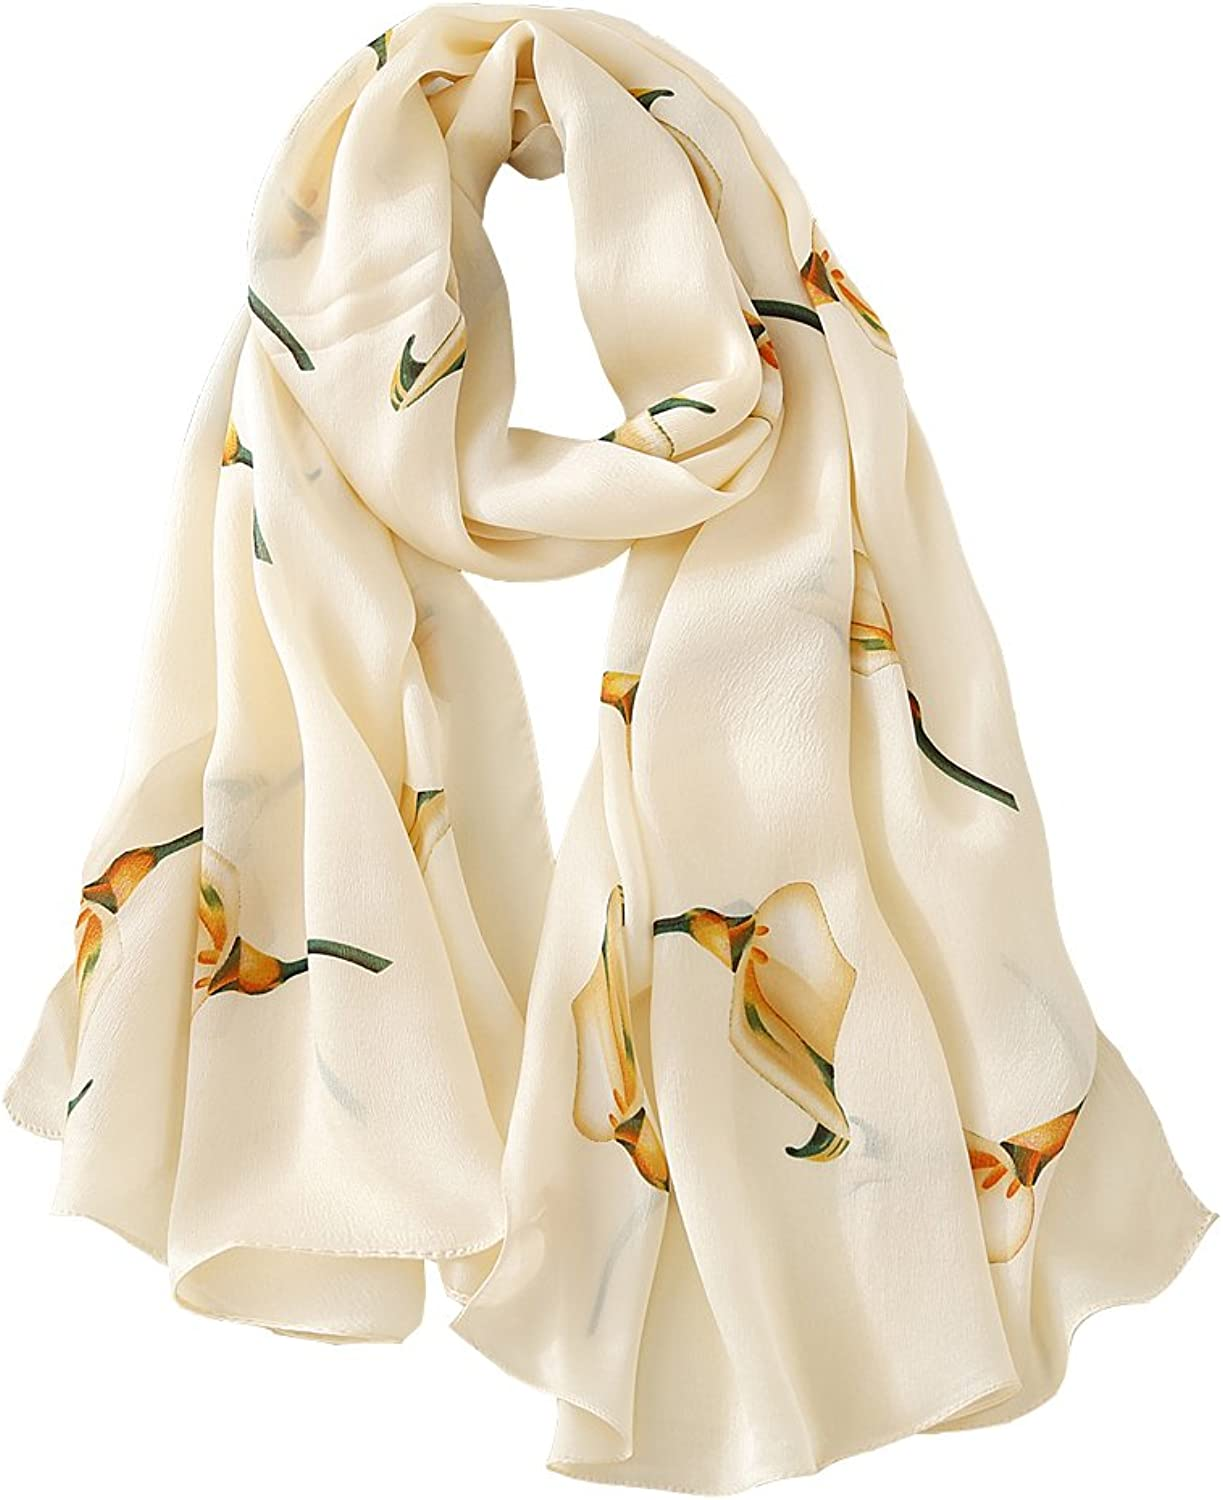 JIMINCI Womens Fashion Scarf 100% Silk Scarf